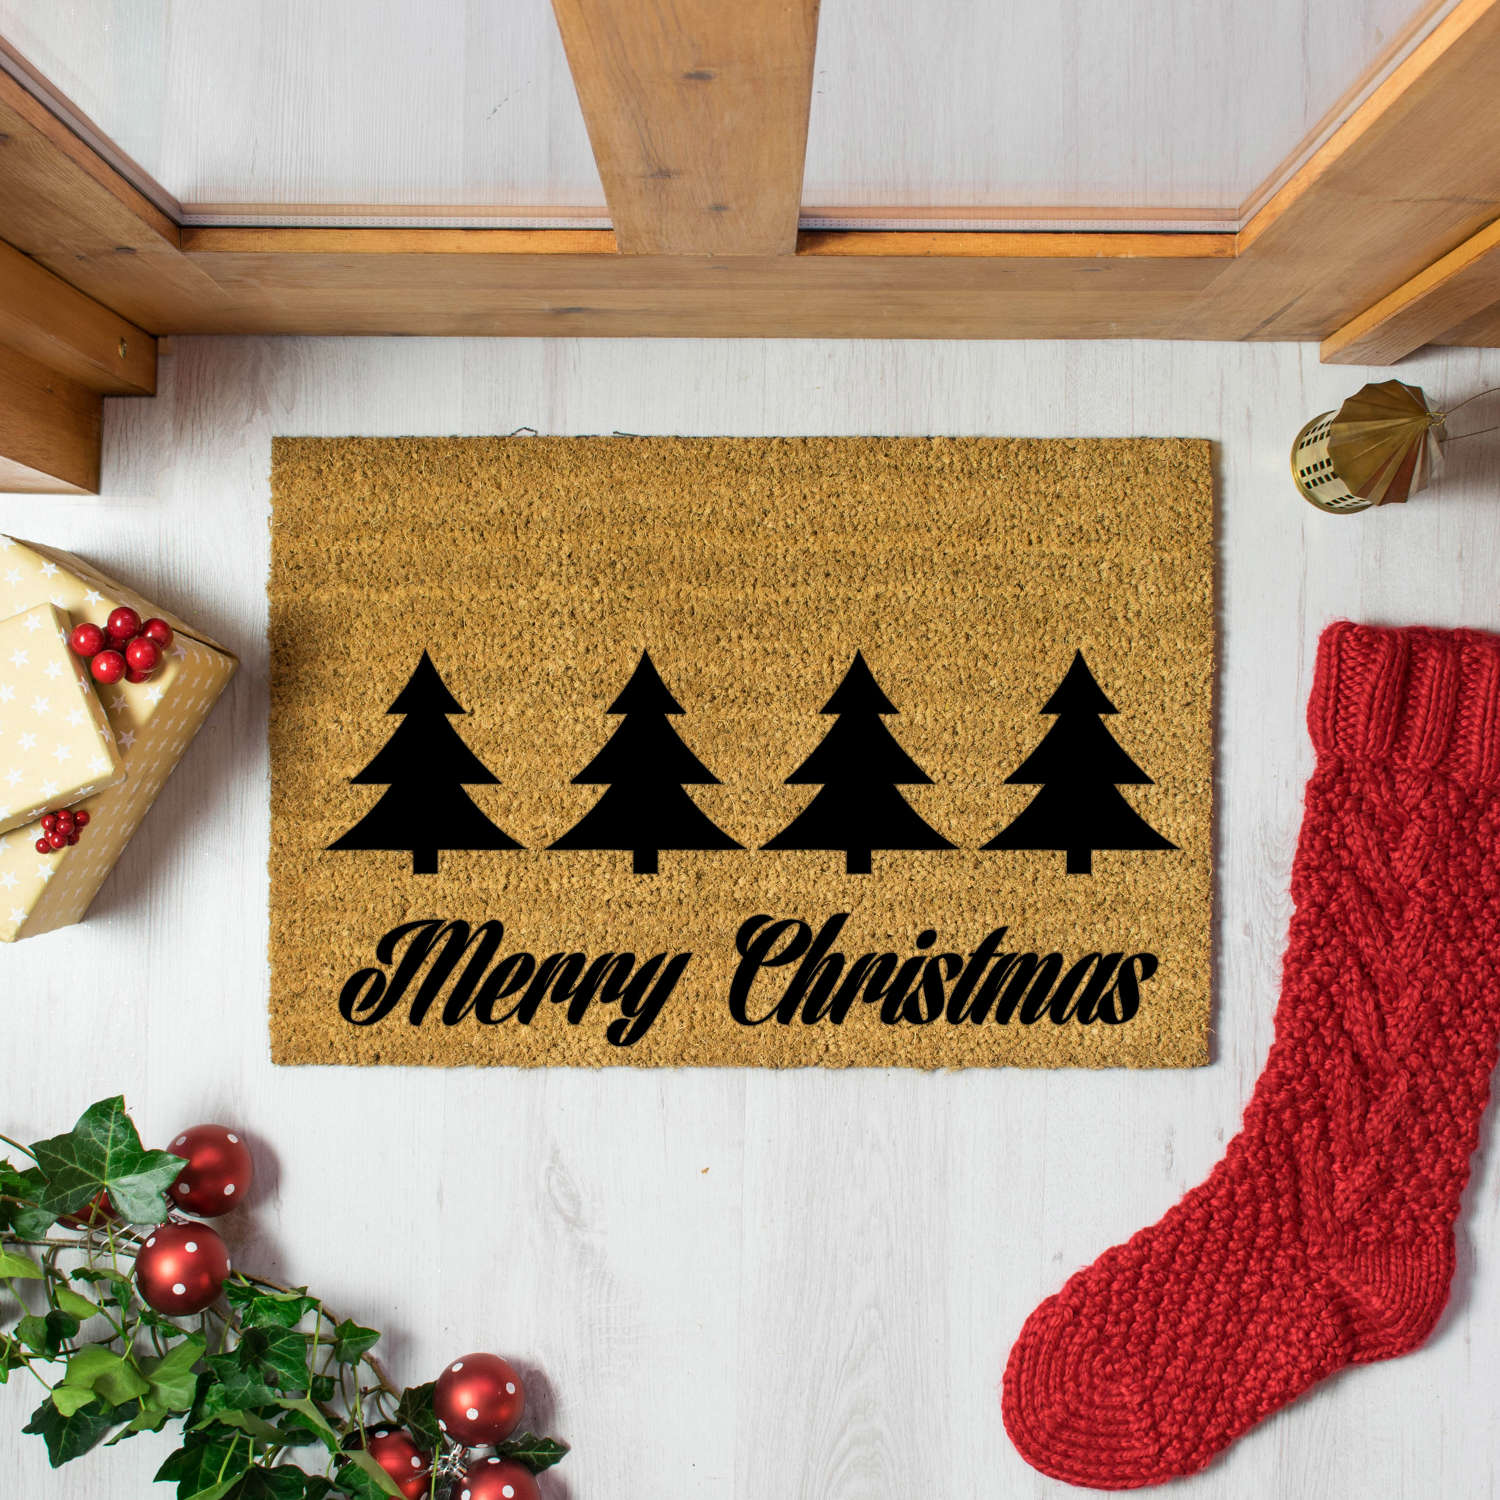 Merry Christmas with pine trees doormat